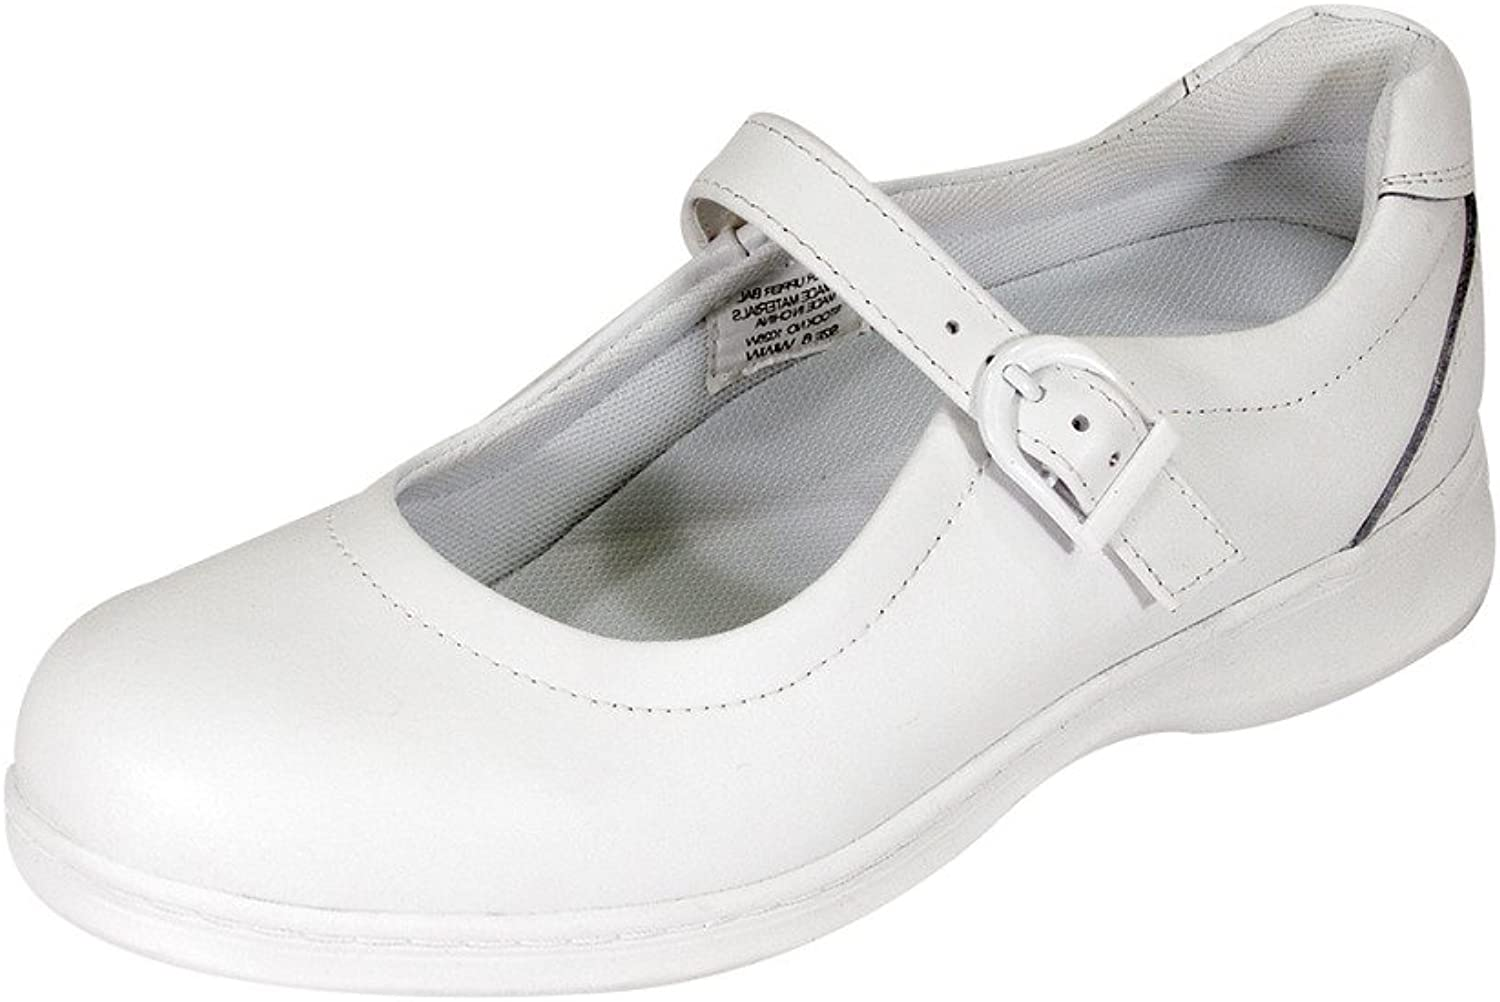 24 Hour Comfort Cara Women Wide Width Adjustable Buckle Step in Mary Jane shoes (Size Measurement Guide)